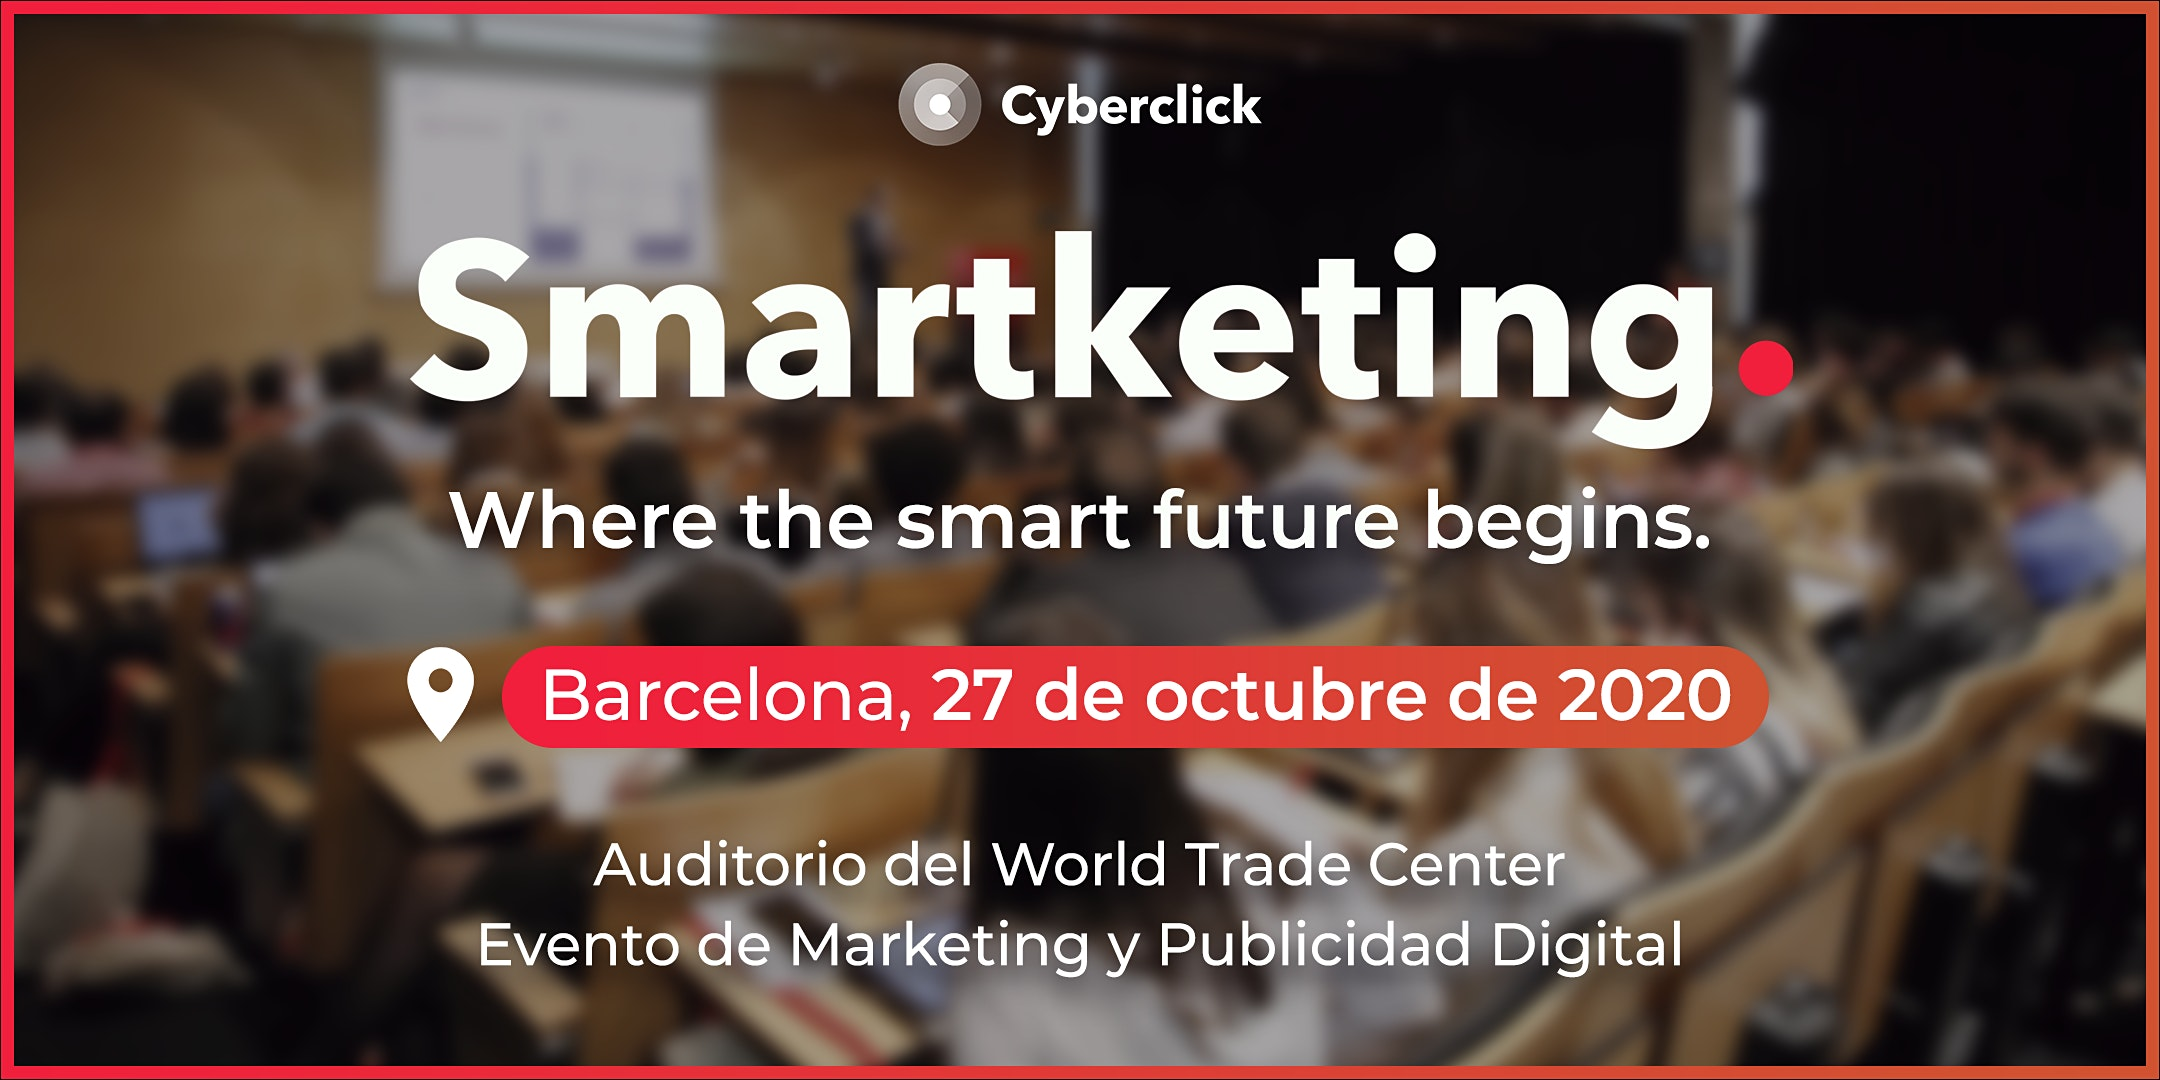 Smartketing 2020 - Evento de marketing y publicidad digital